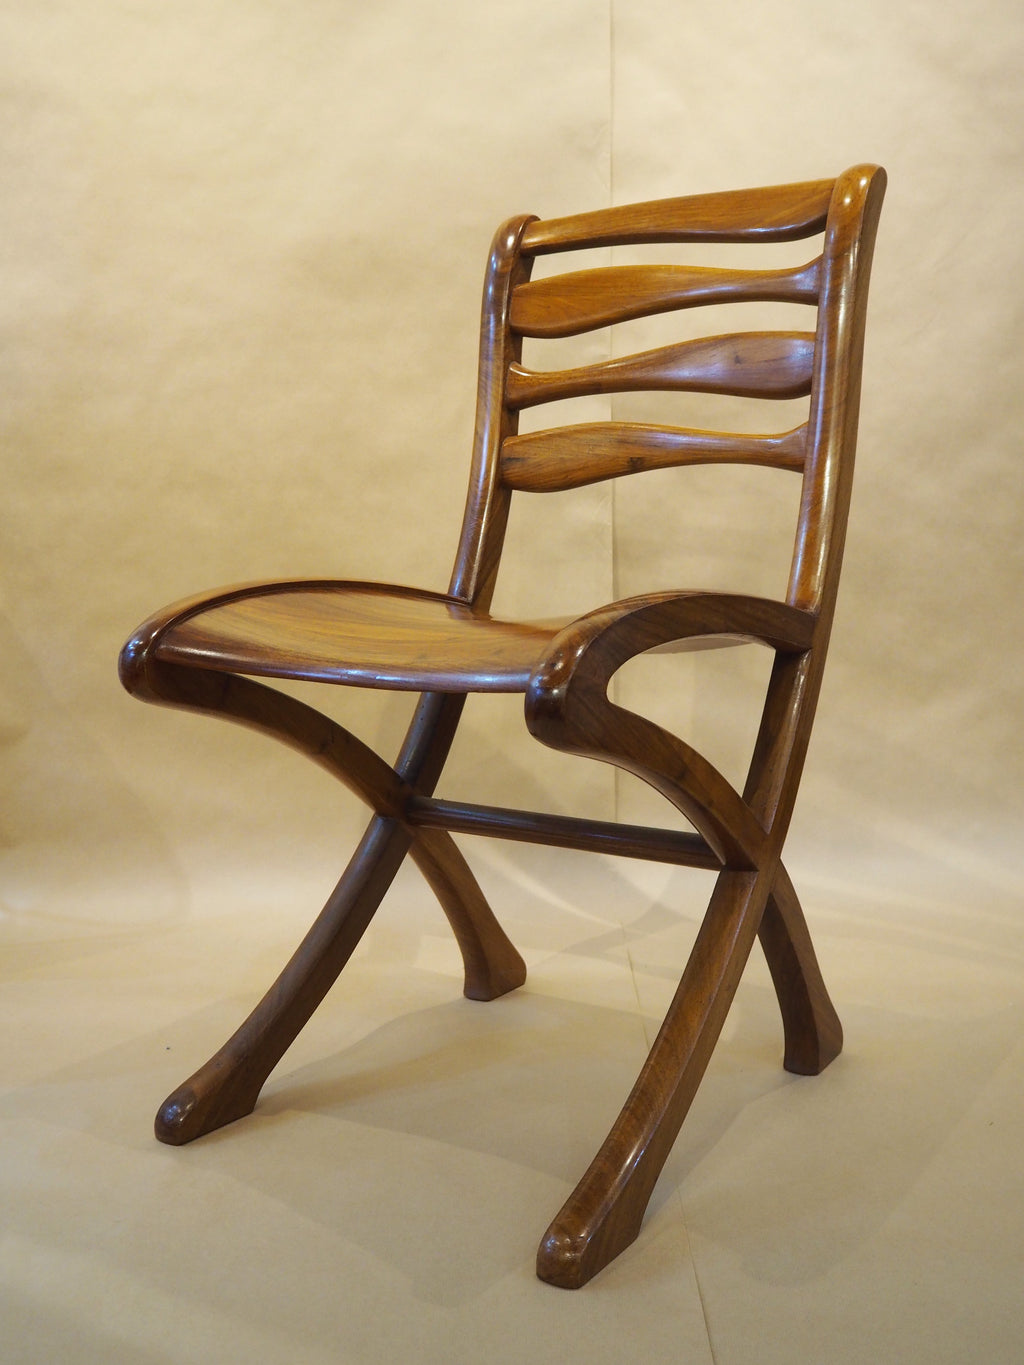 Rampelberg, Marc – Muninga Chair